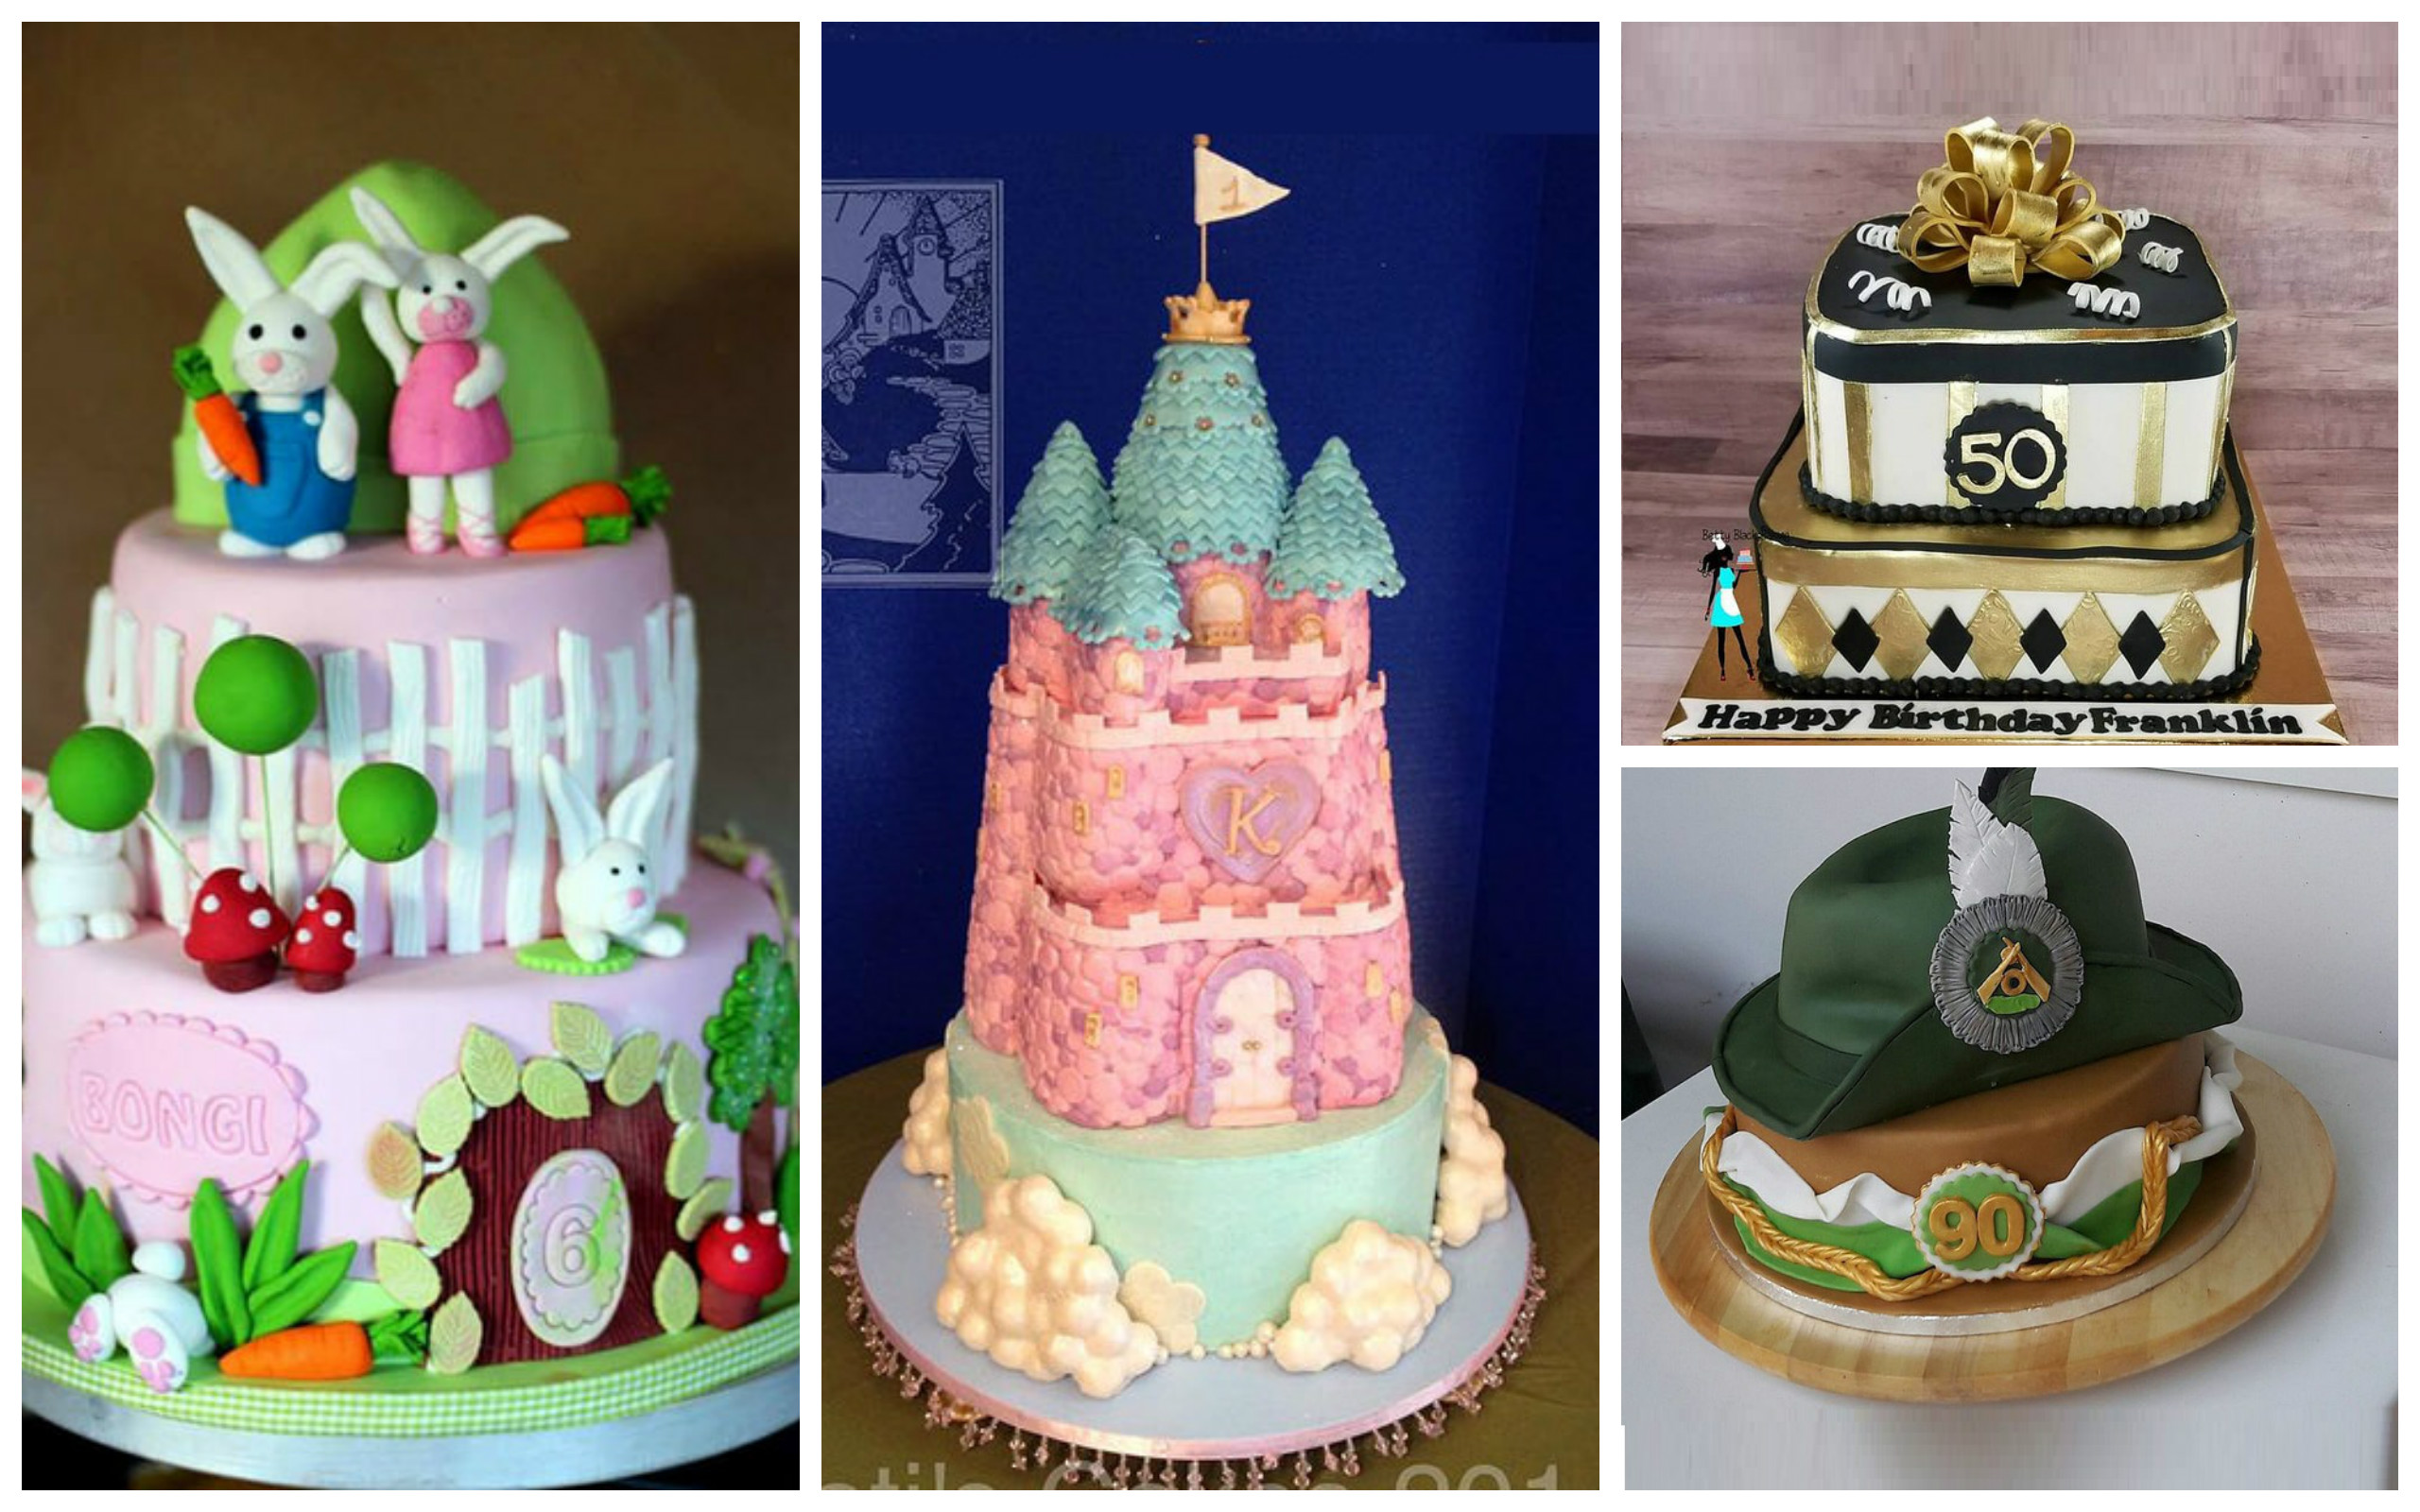 Cake Design Competition : Competition: Decorator of the World s Super Adorable Cake ...